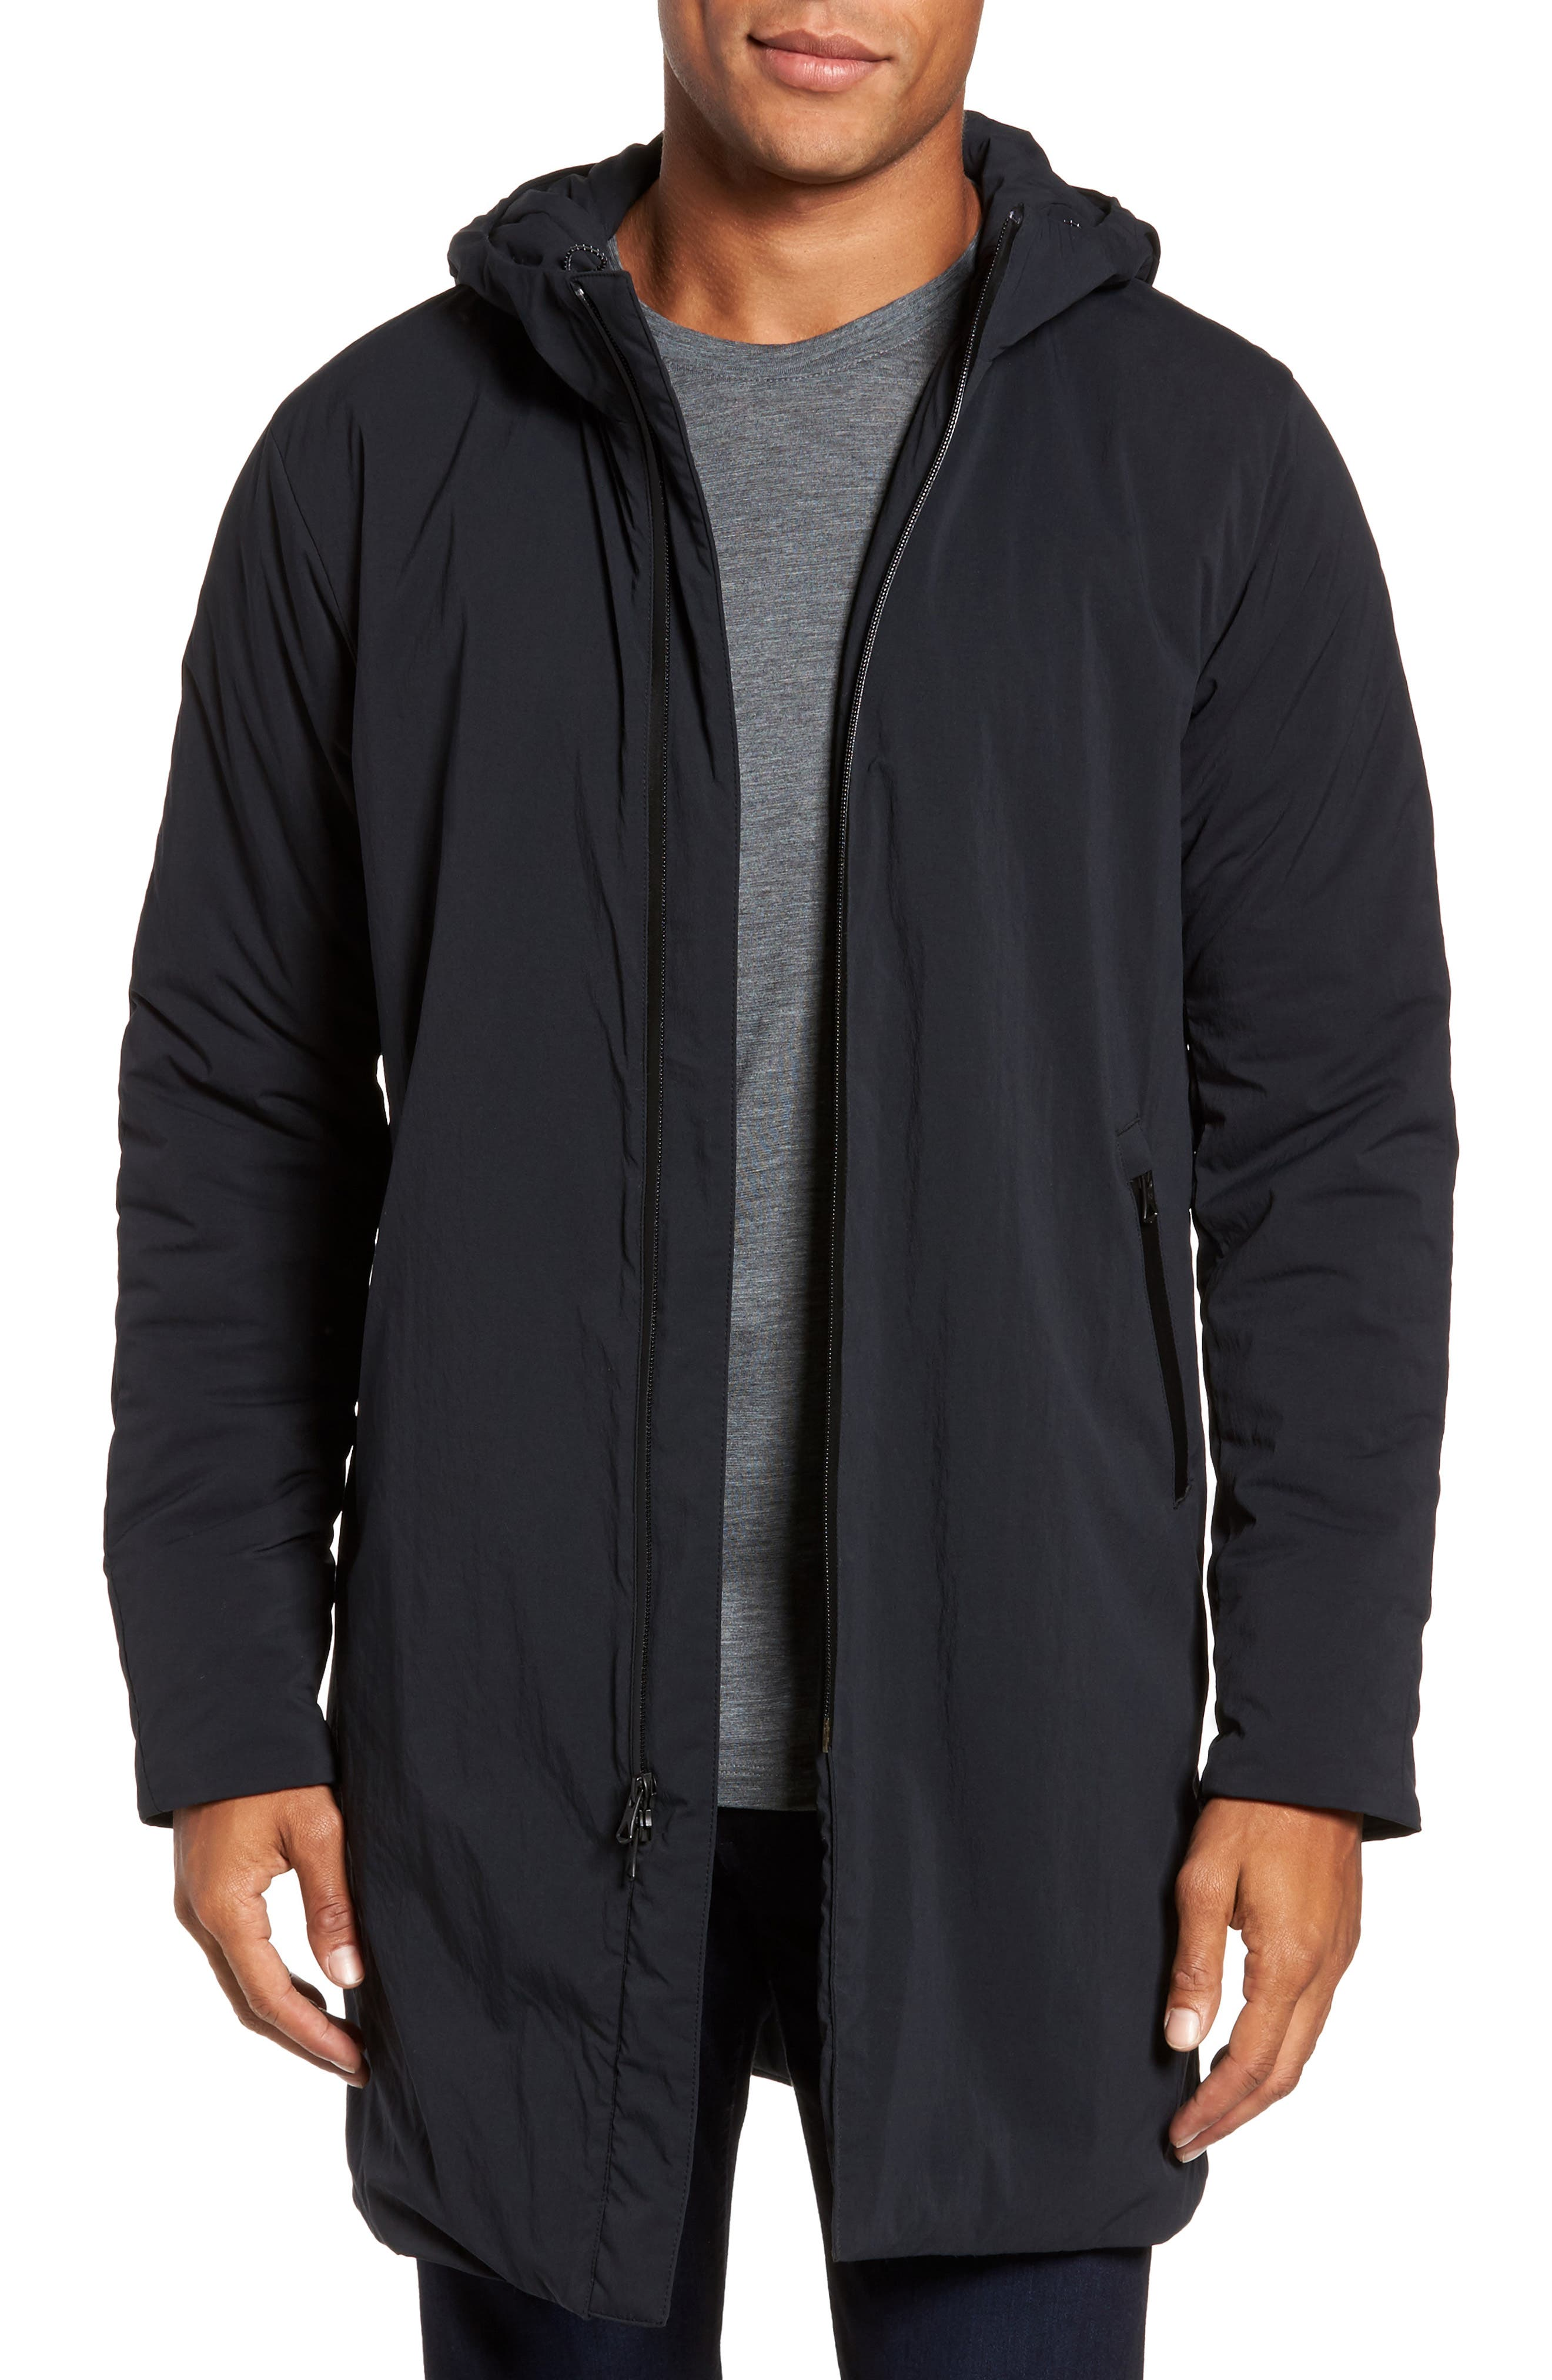 Insulated Trim Sideline Jacket,                             Main thumbnail 1, color,                             Black